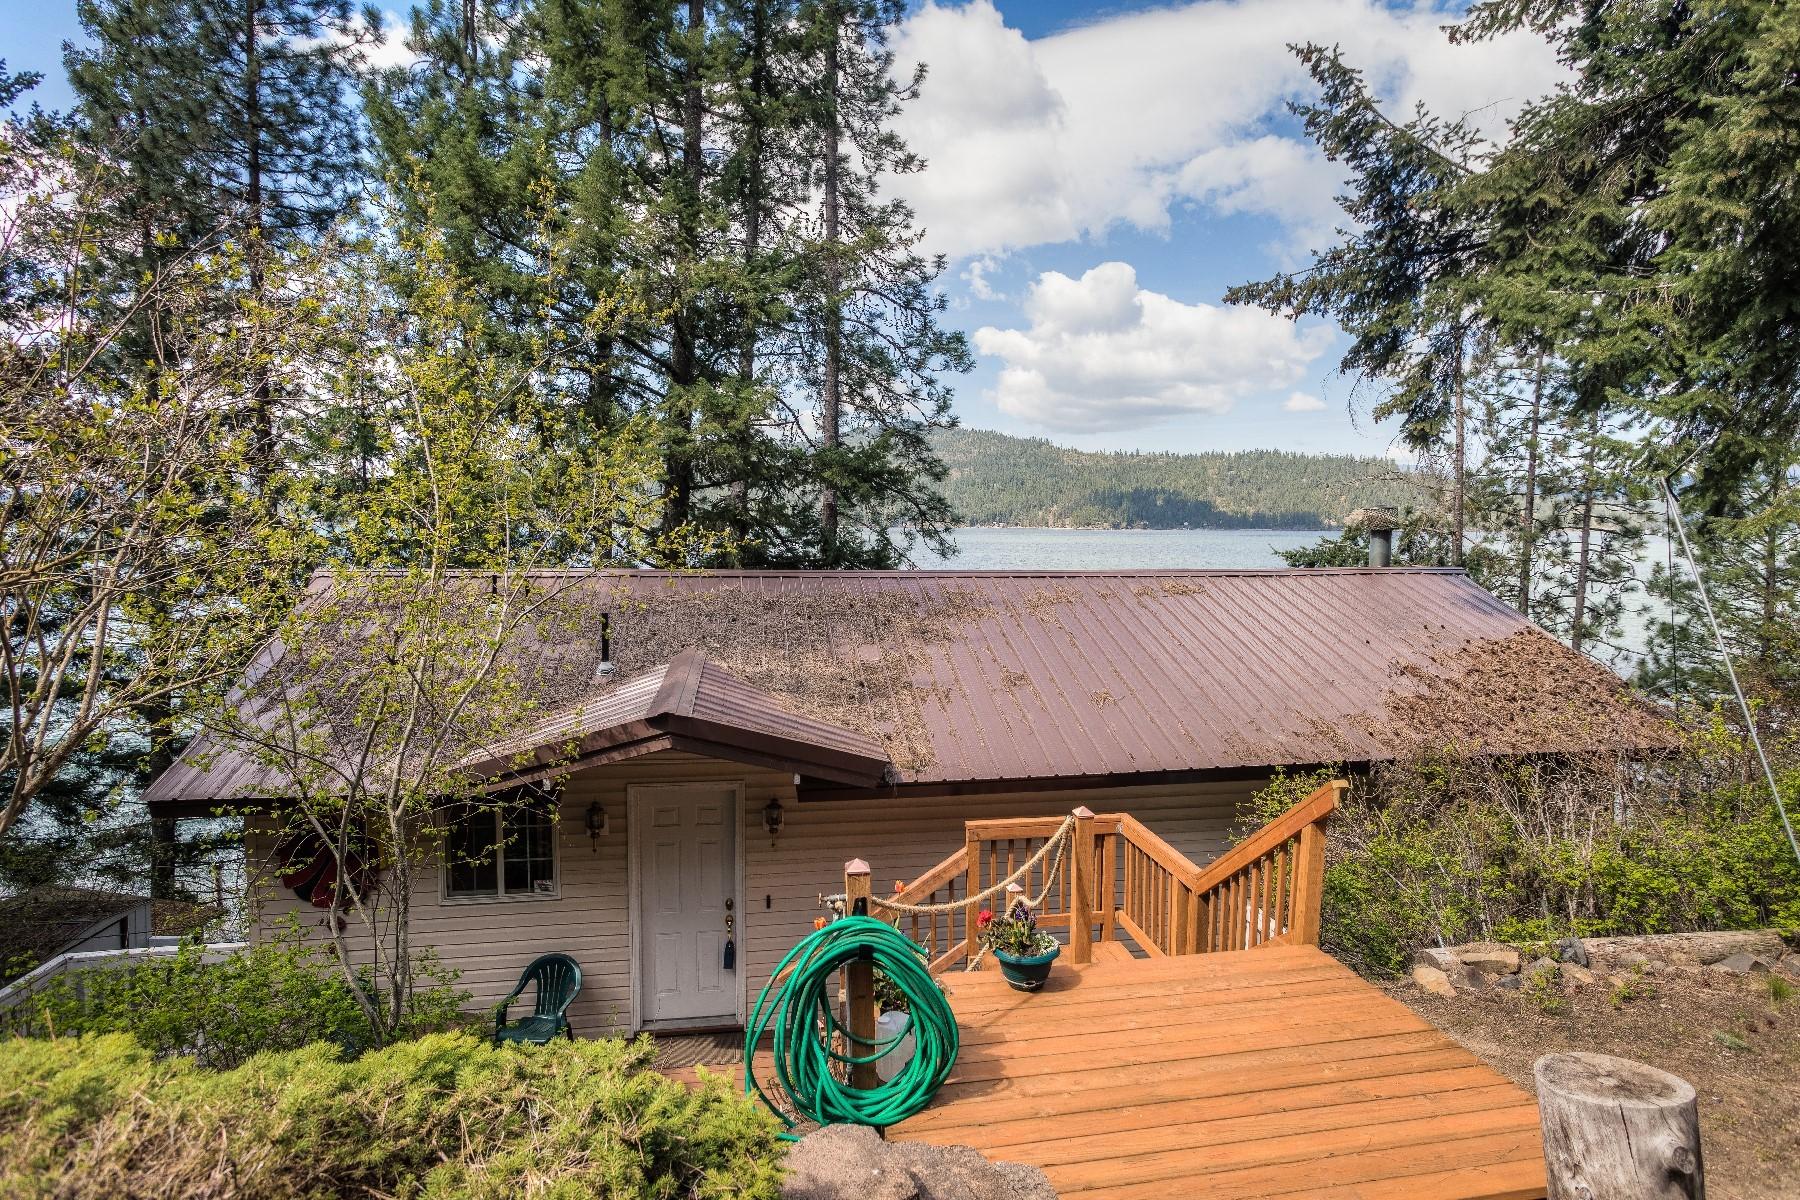 Single Family Home for Active at Driftwood 26641 S Highway 97 Harrison, Idaho 83833 United States